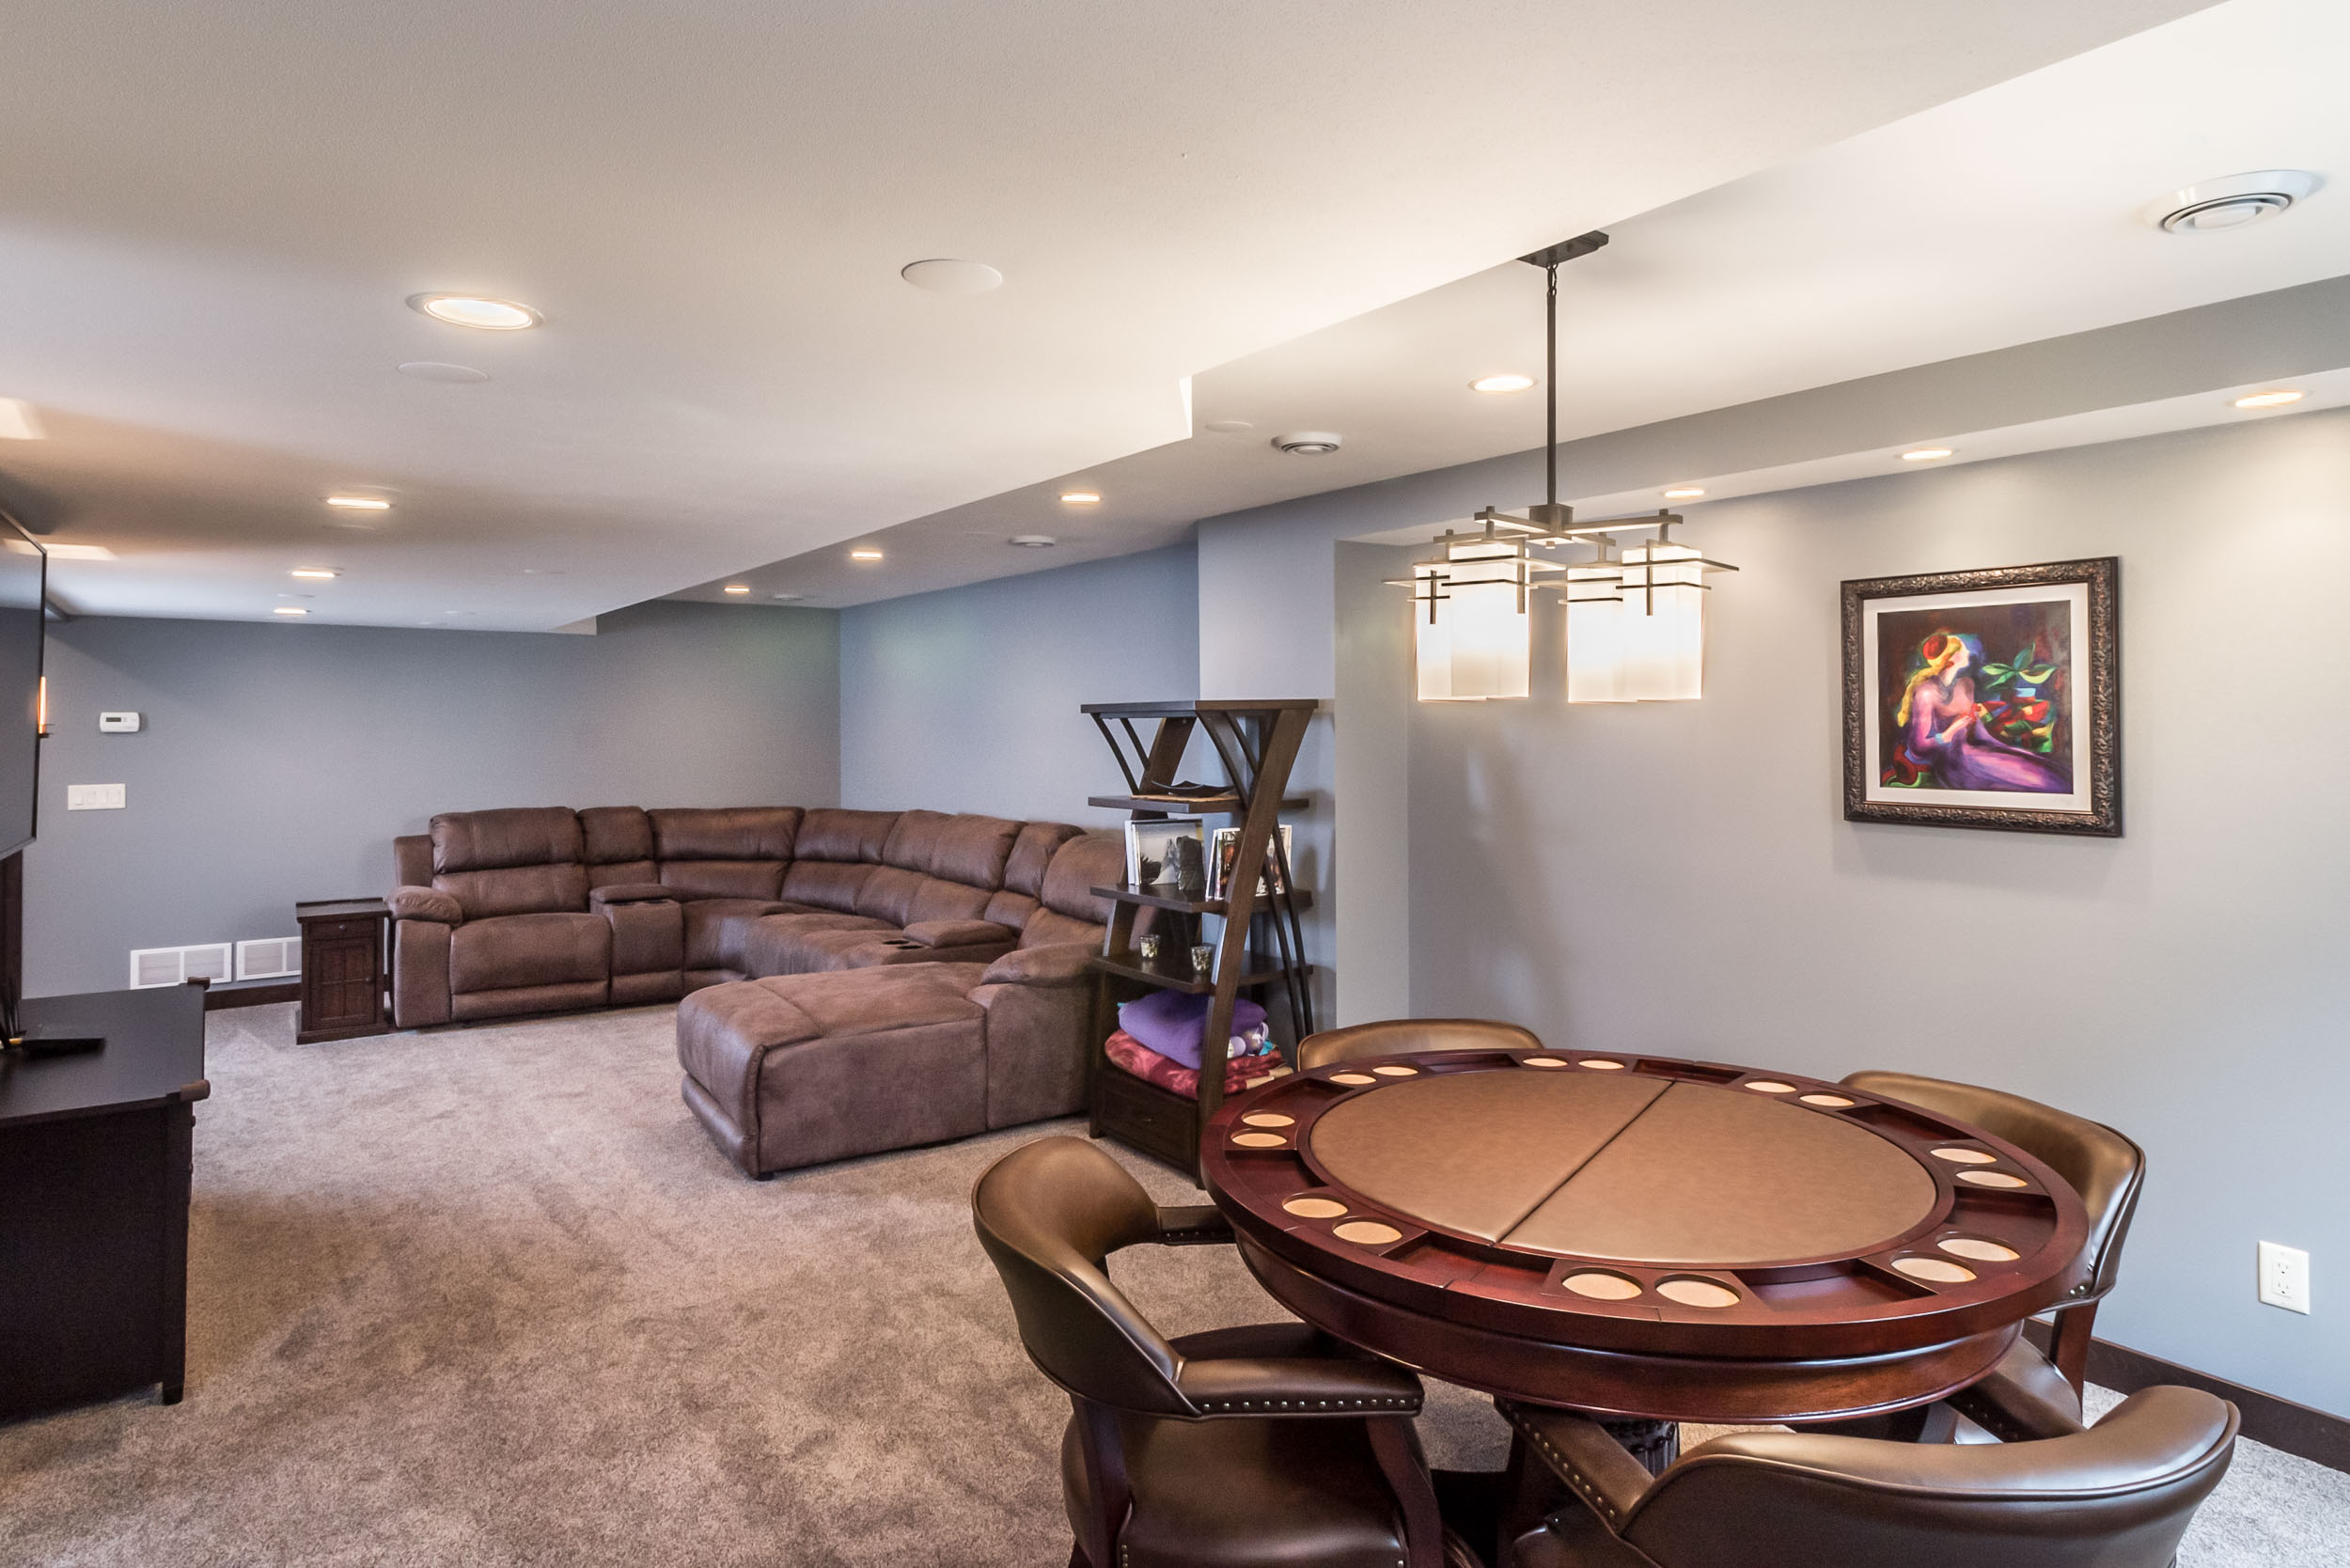 Finished Basement With Family Room Degnan Design Build Remodel